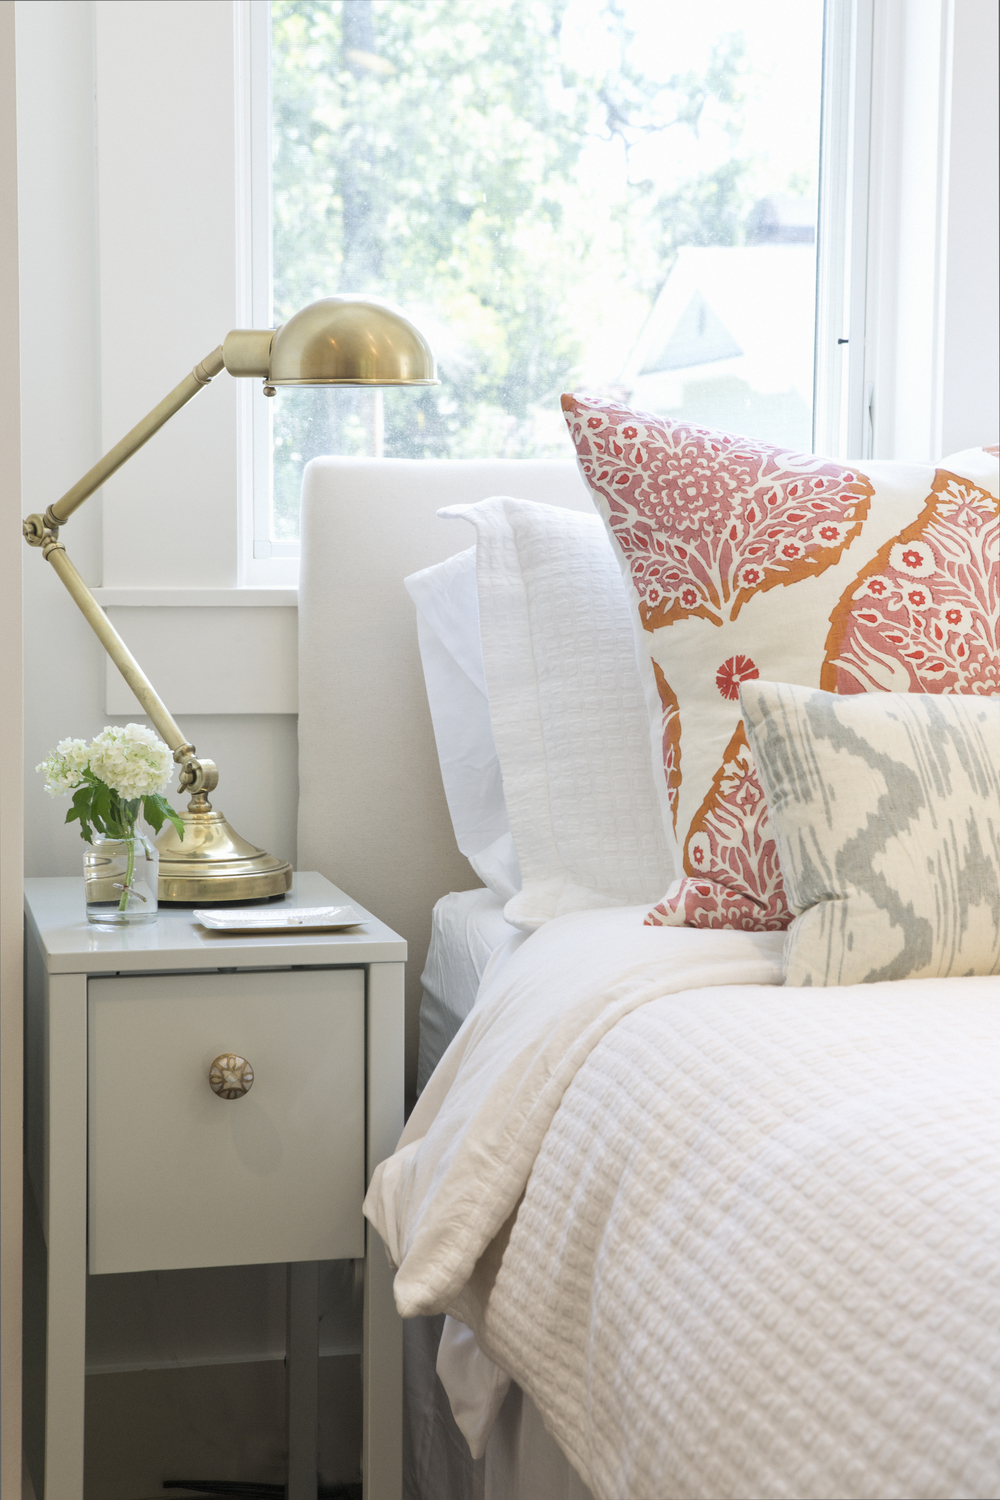 Lamp size for nightstand - Table Lamp Roundup